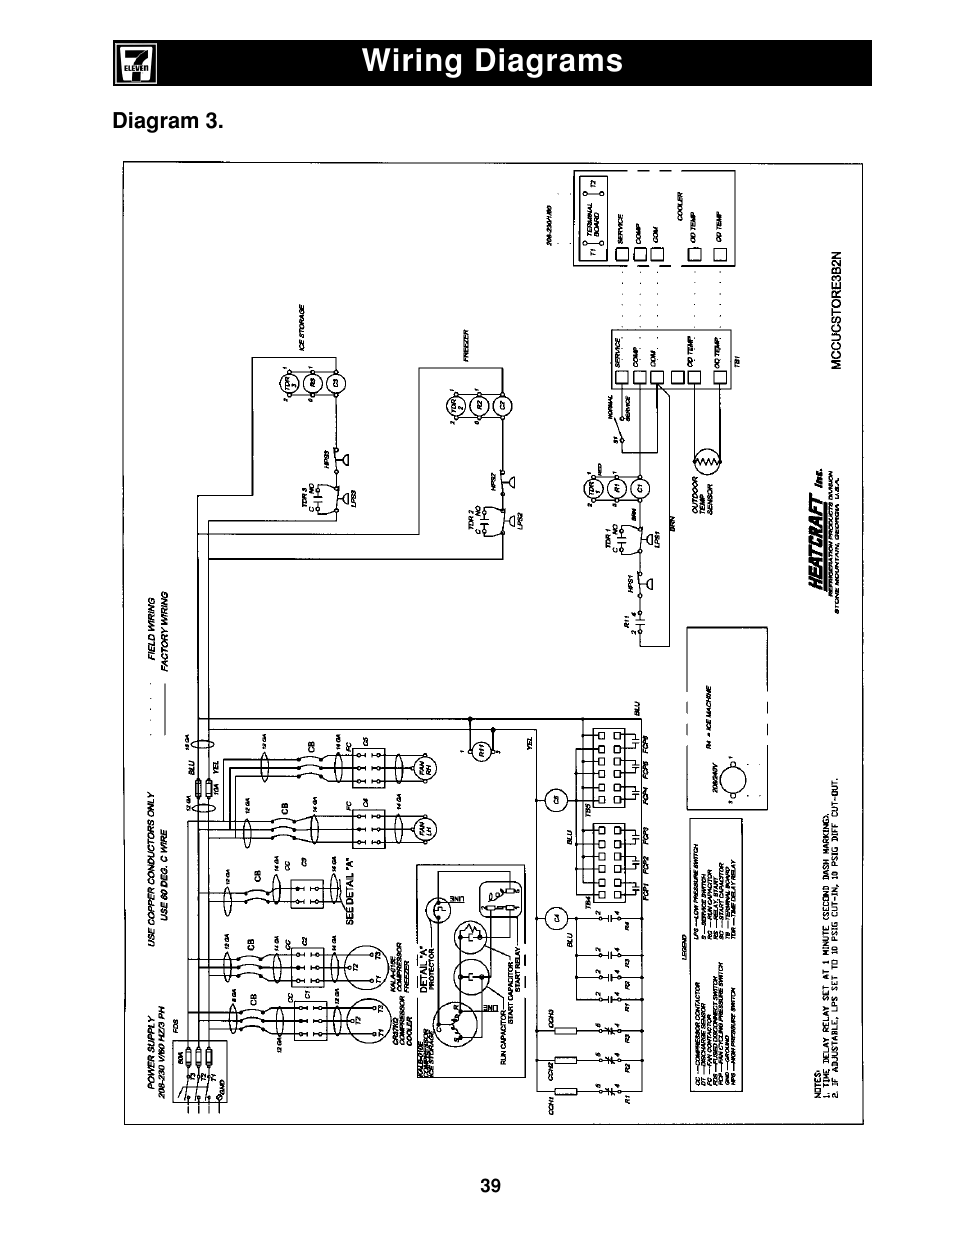 wiring diagrams heatcraft refrigeration products ii user manual page 39 48 original mode. Black Bedroom Furniture Sets. Home Design Ideas